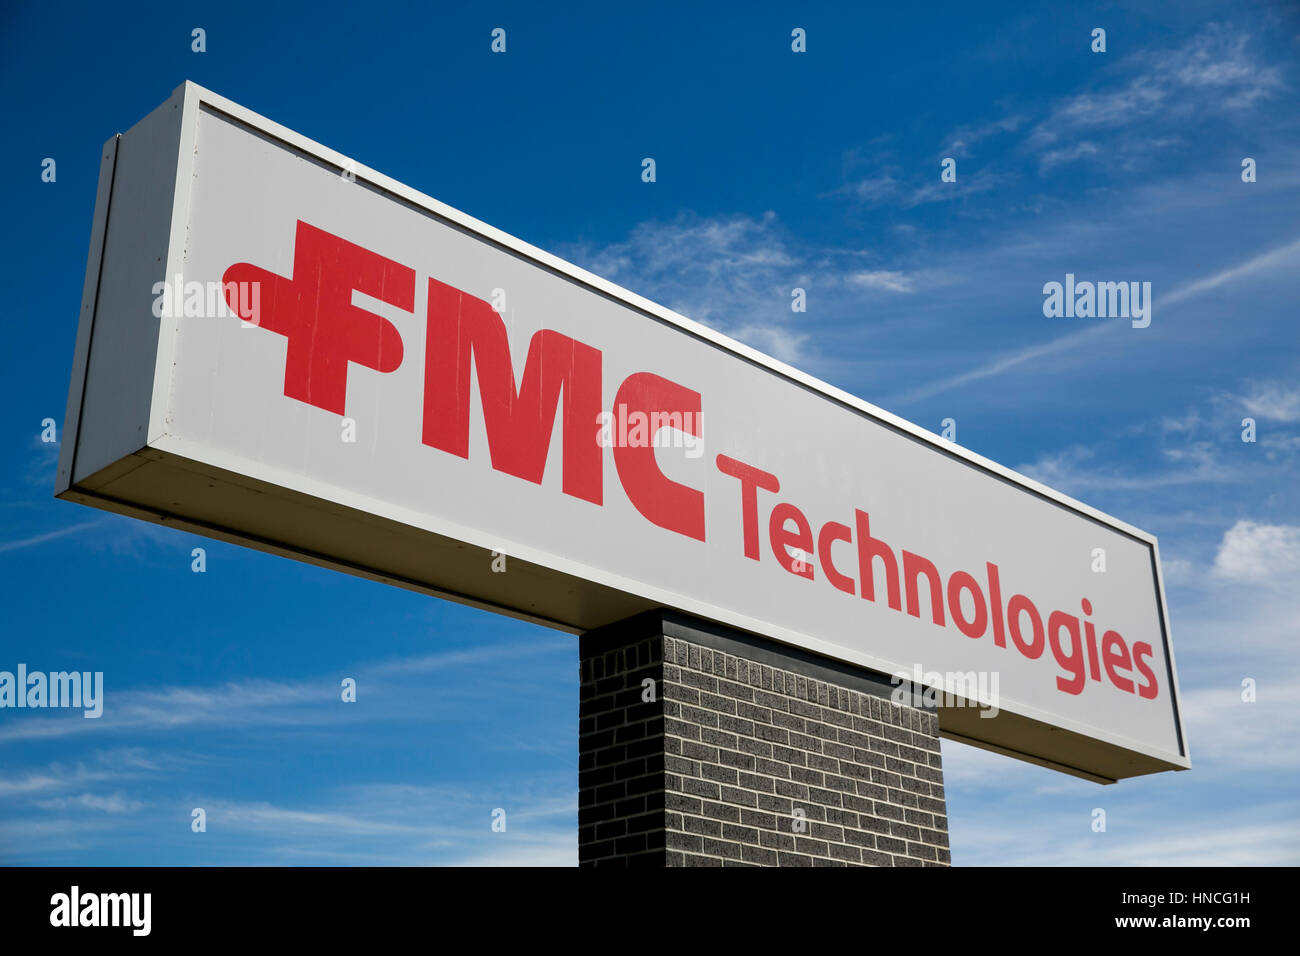 A logo sign outside of a facility occupied by FMC Technologies in San Antonio, Texas on January 29, 2017. - Stock Image